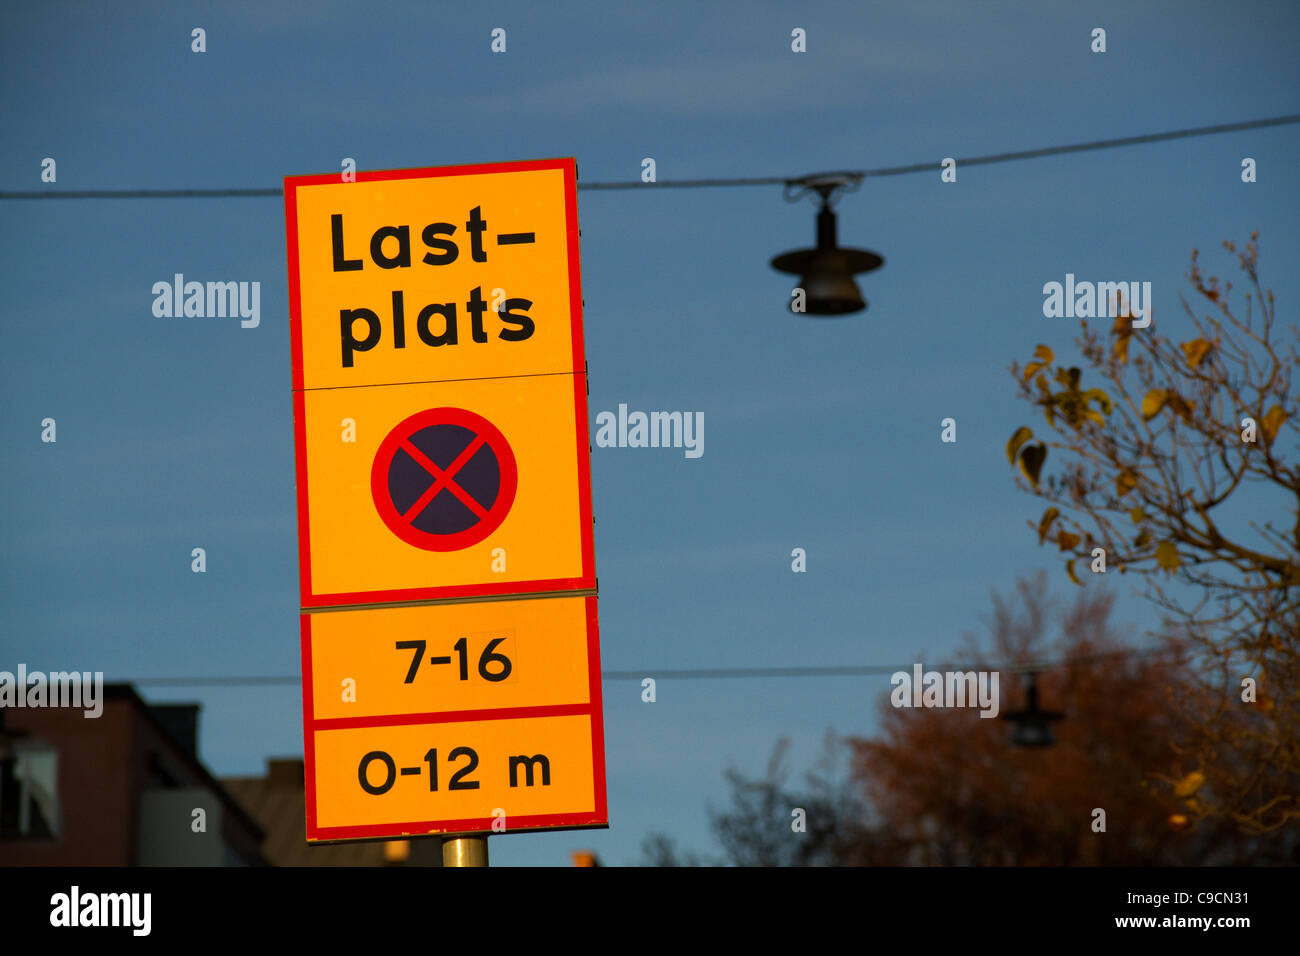 Road sign in Sweden Last plats - Stock Image